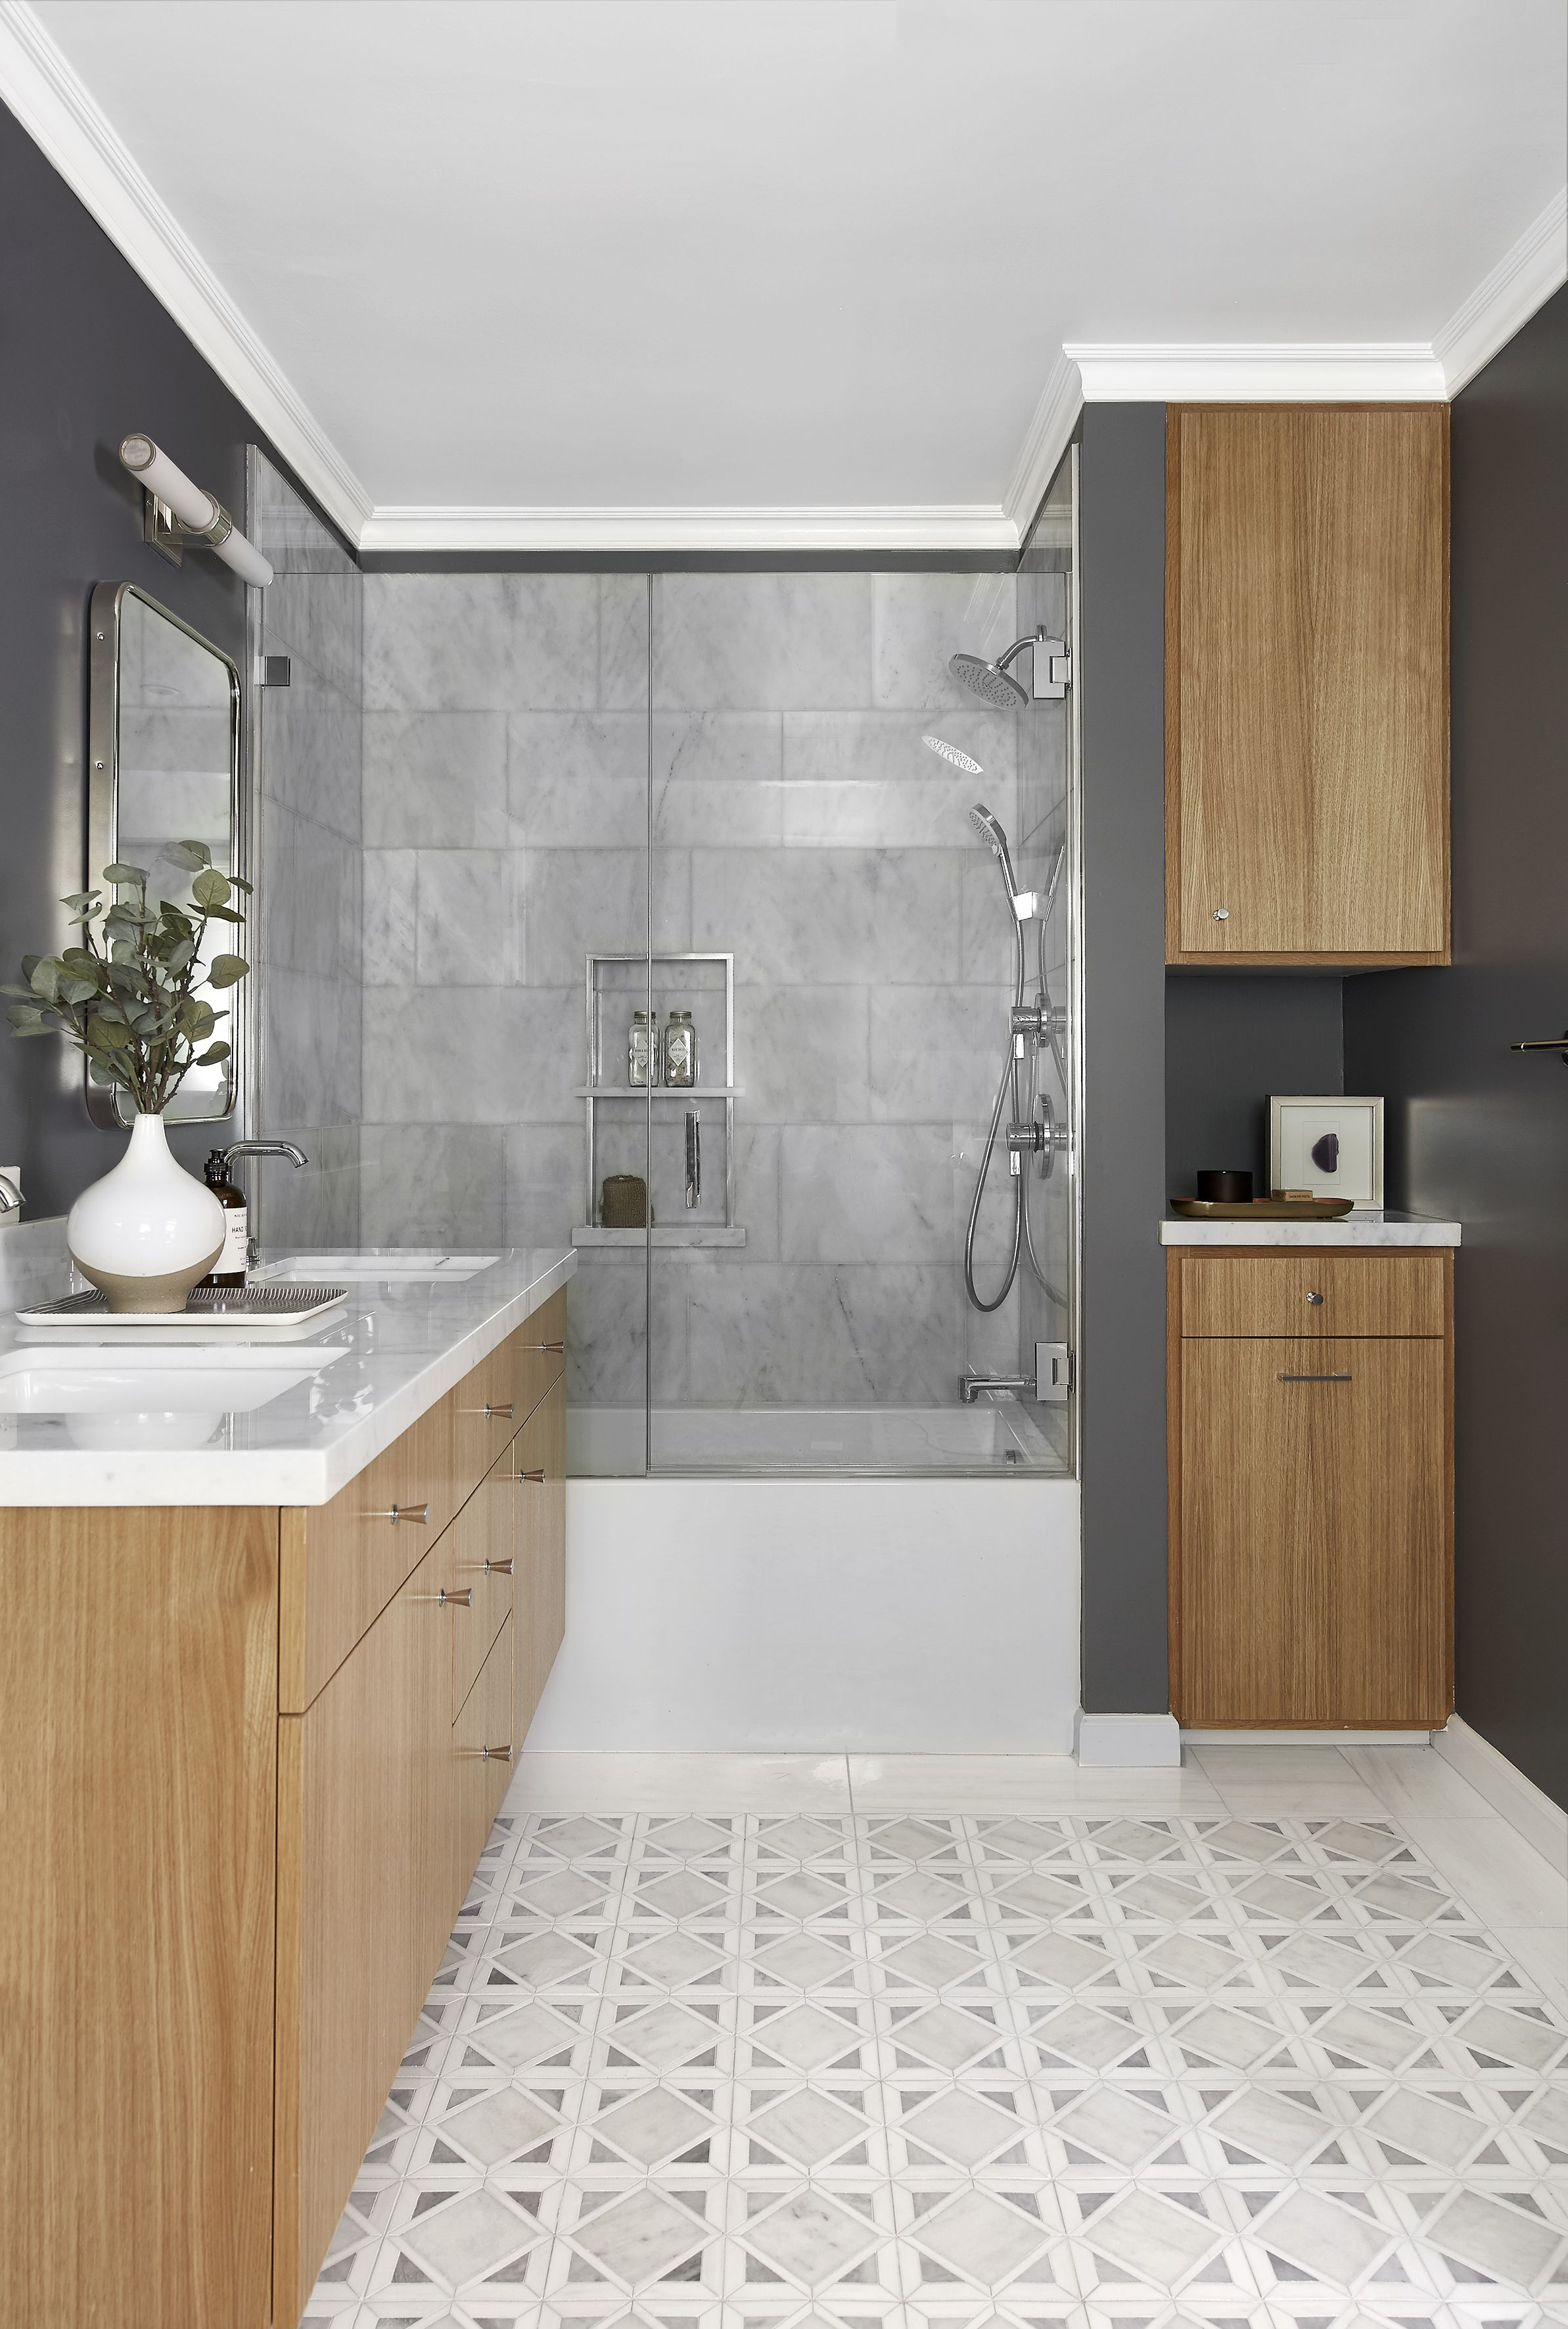 9 Small Bathroom Remodel Tips From Experts, Remodeling Your Bathroom